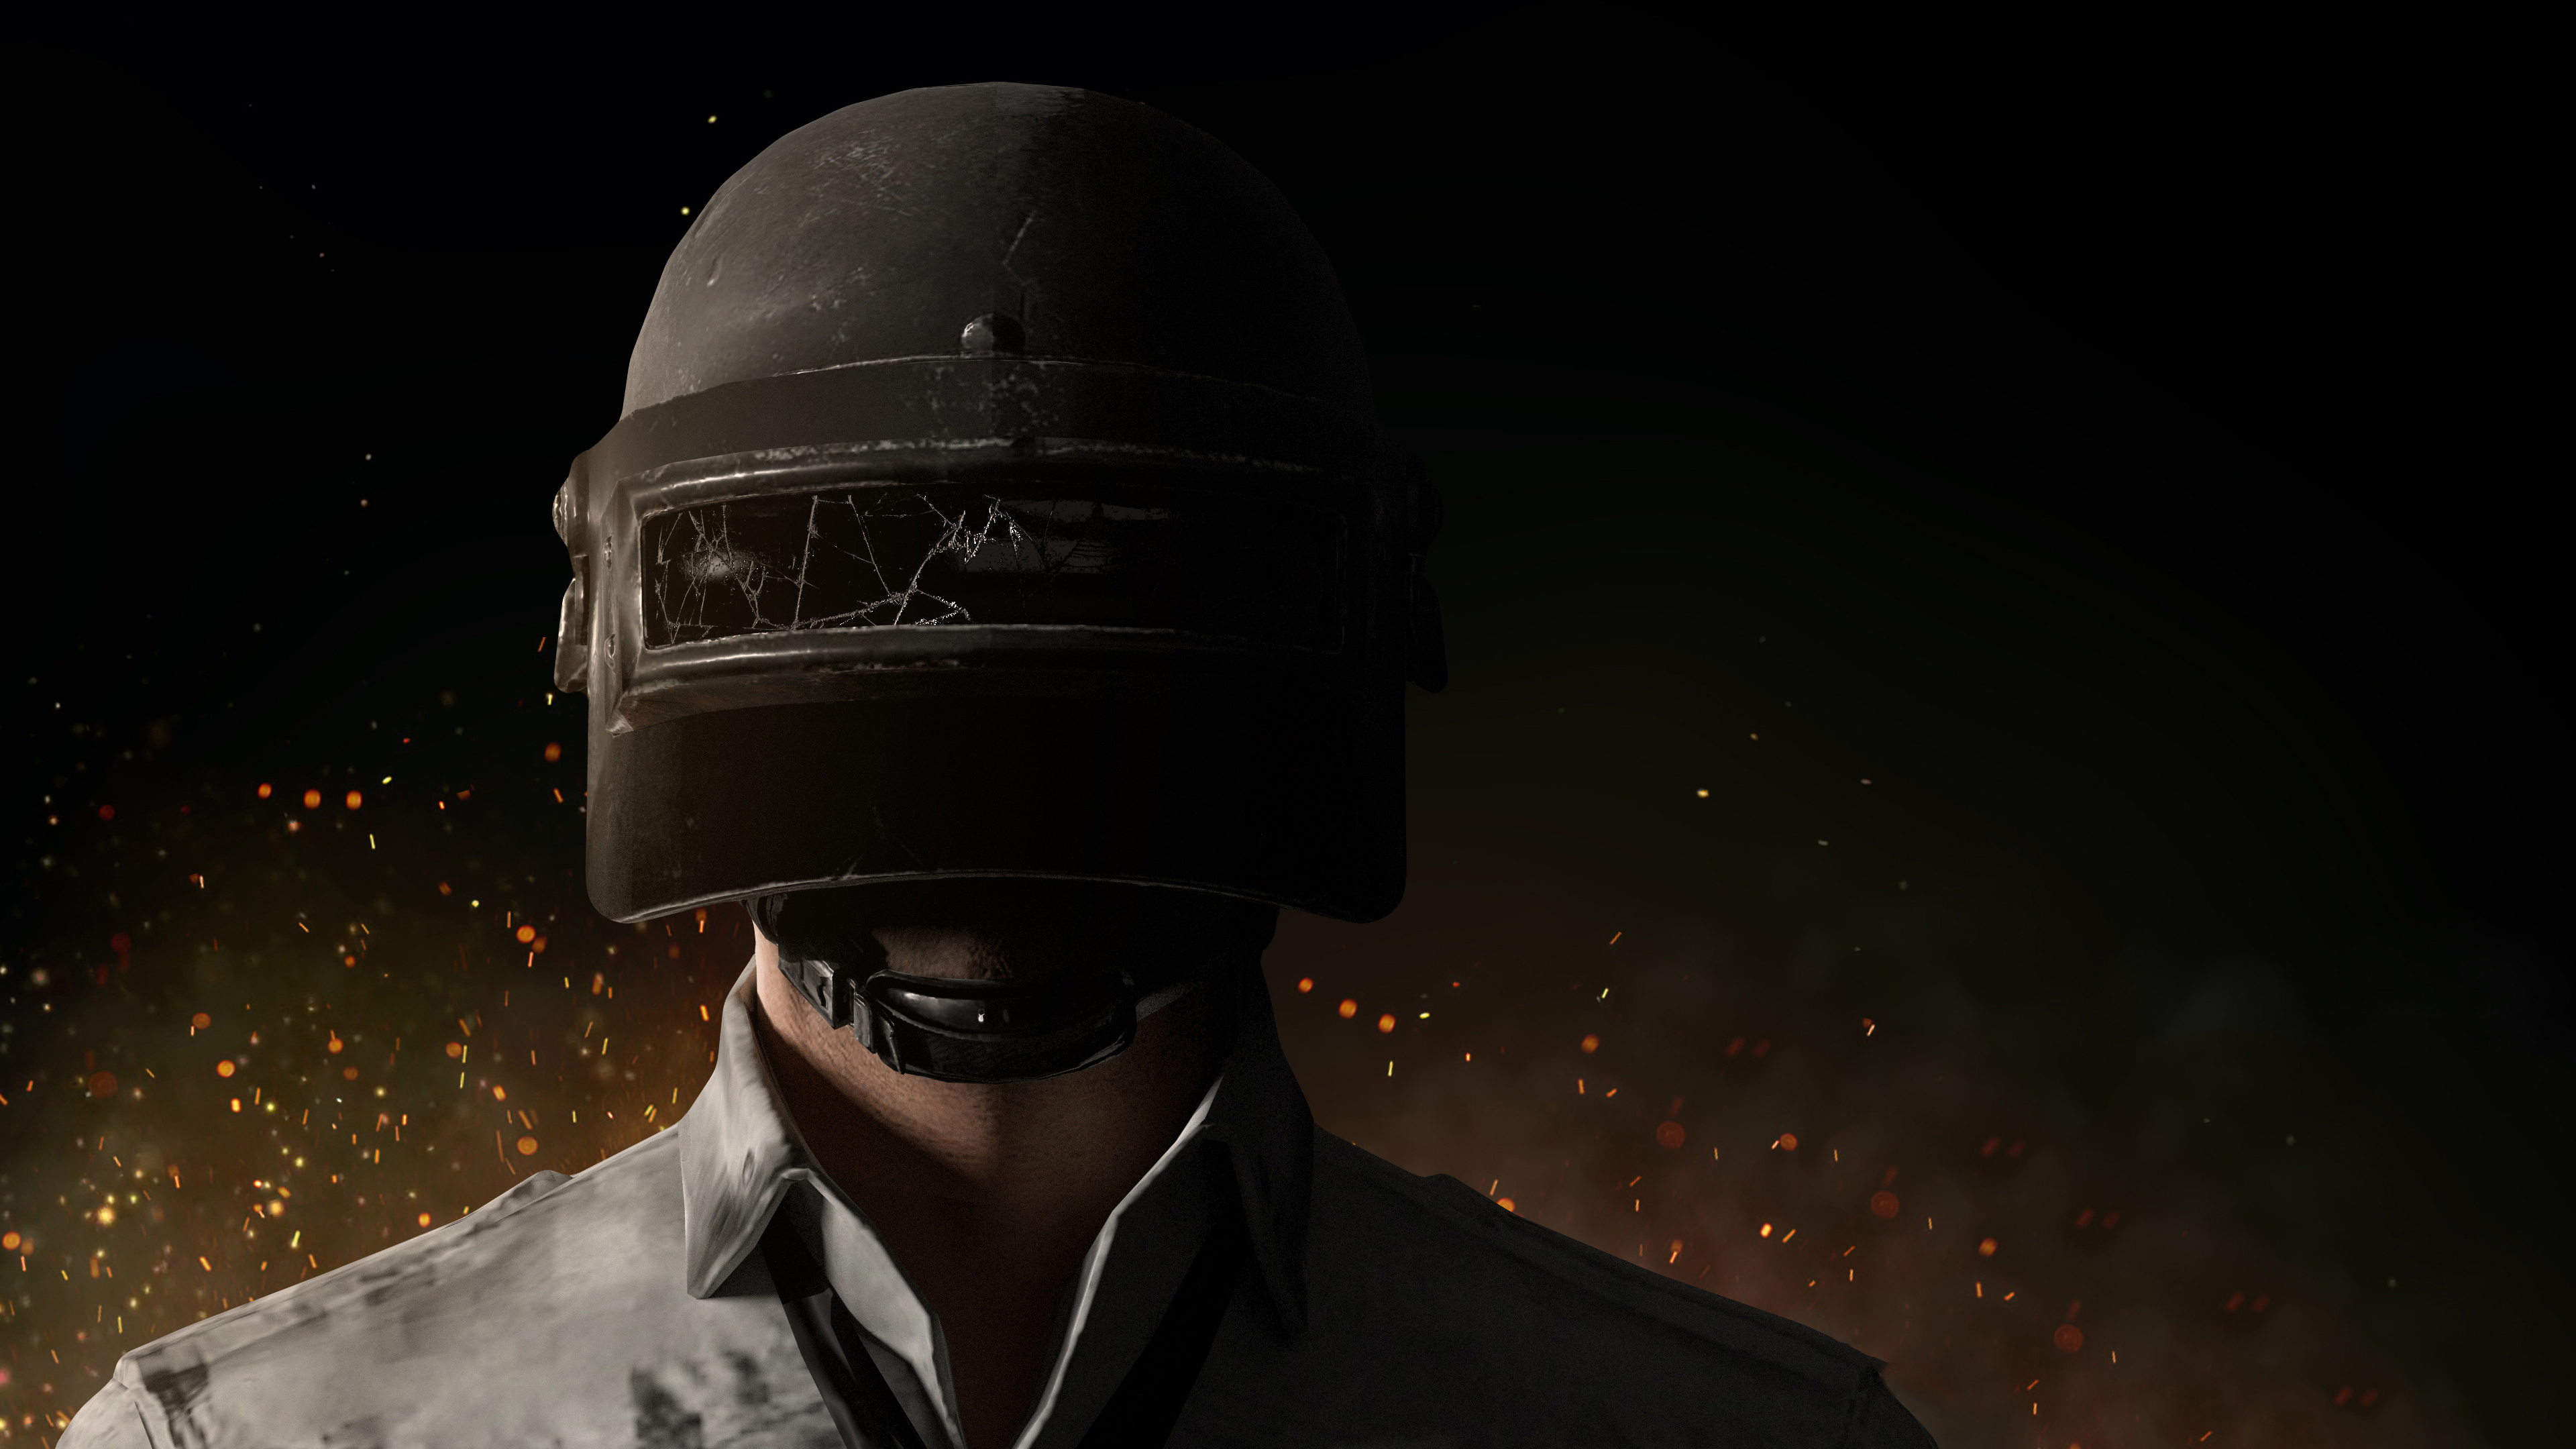 Pubg Wallpaper Phone Hd 4k: Player Unknown's Battlegrounds (PUBG) 4K Helmetguy Pubg